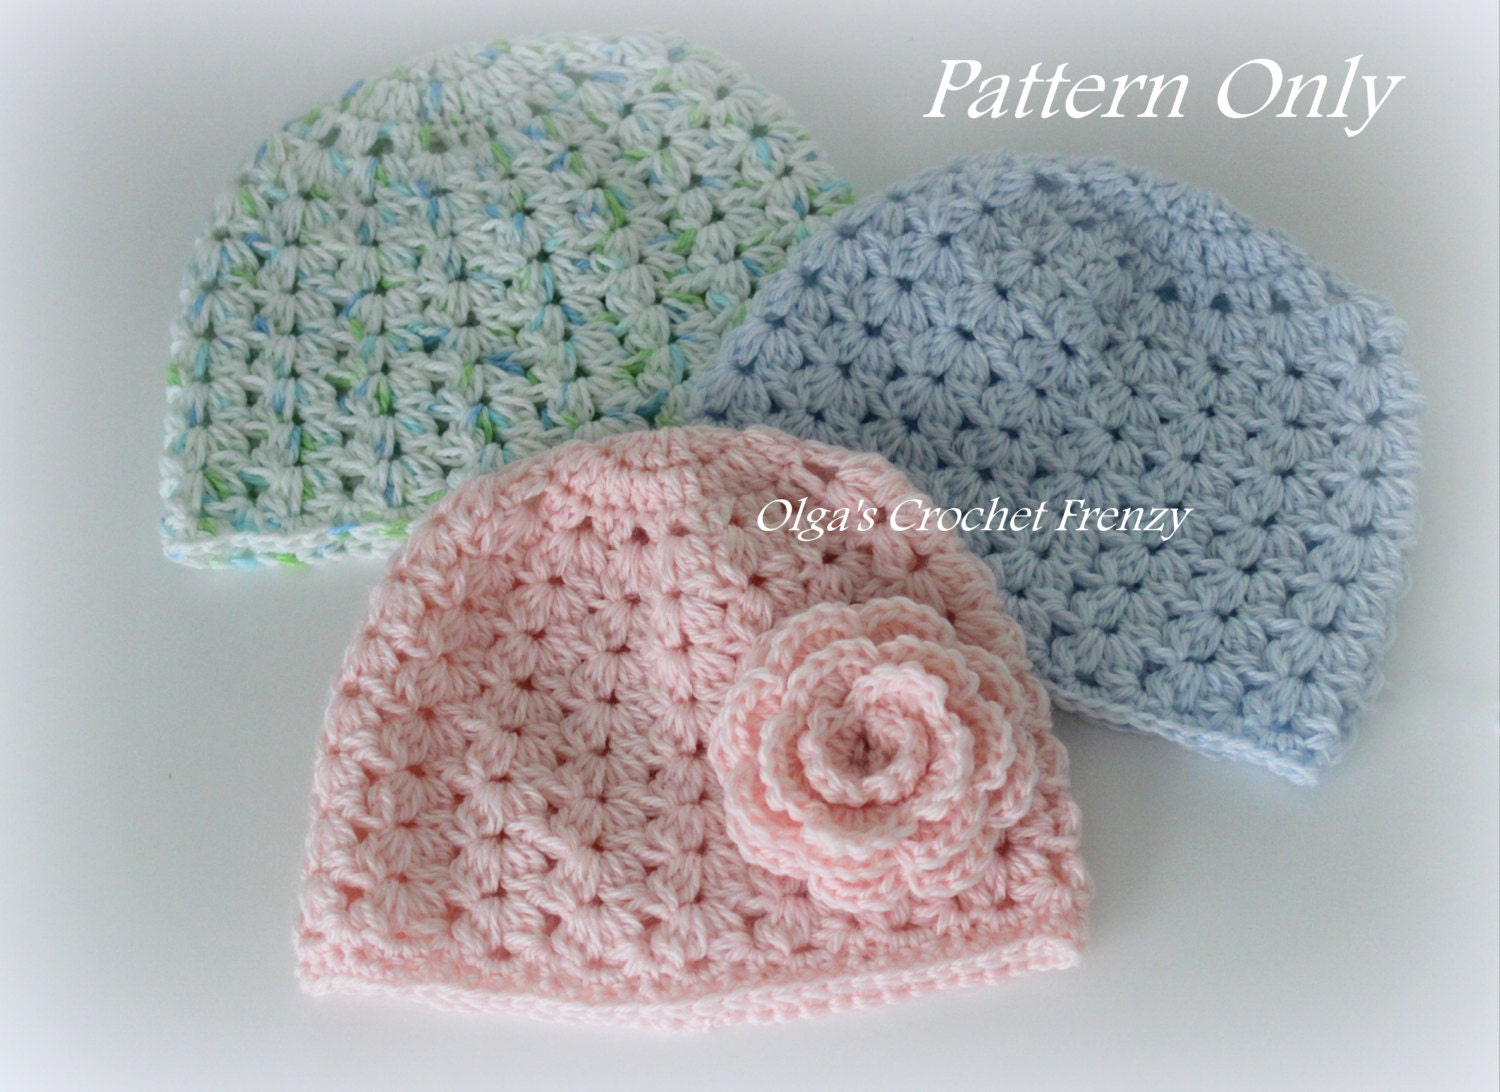 Crochet Baby Hat Patterns 6 Months : Crochet Baby Hat Pattern Size 3 6 Months Very Detailed